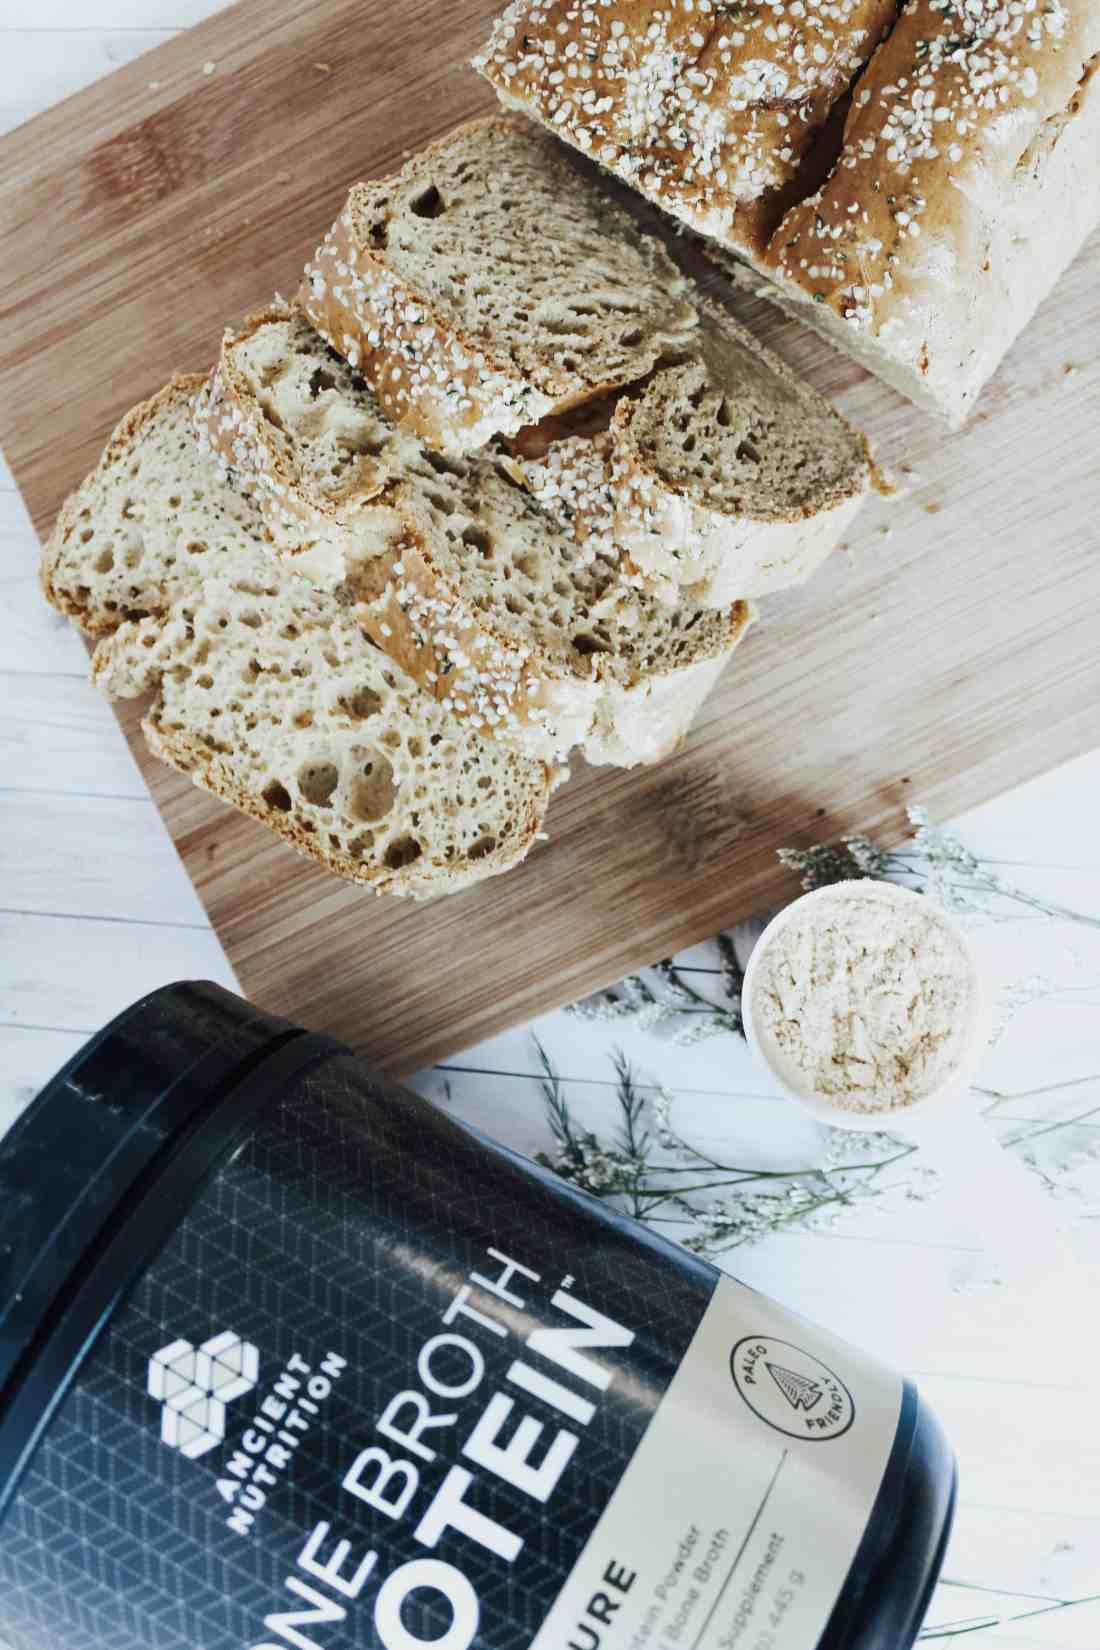 This 4 ingredient bone broth bread recipe is high in collagen, protein, & vital nutrients for gut health. Recipe is gluten free, paleo, & candida friendly.